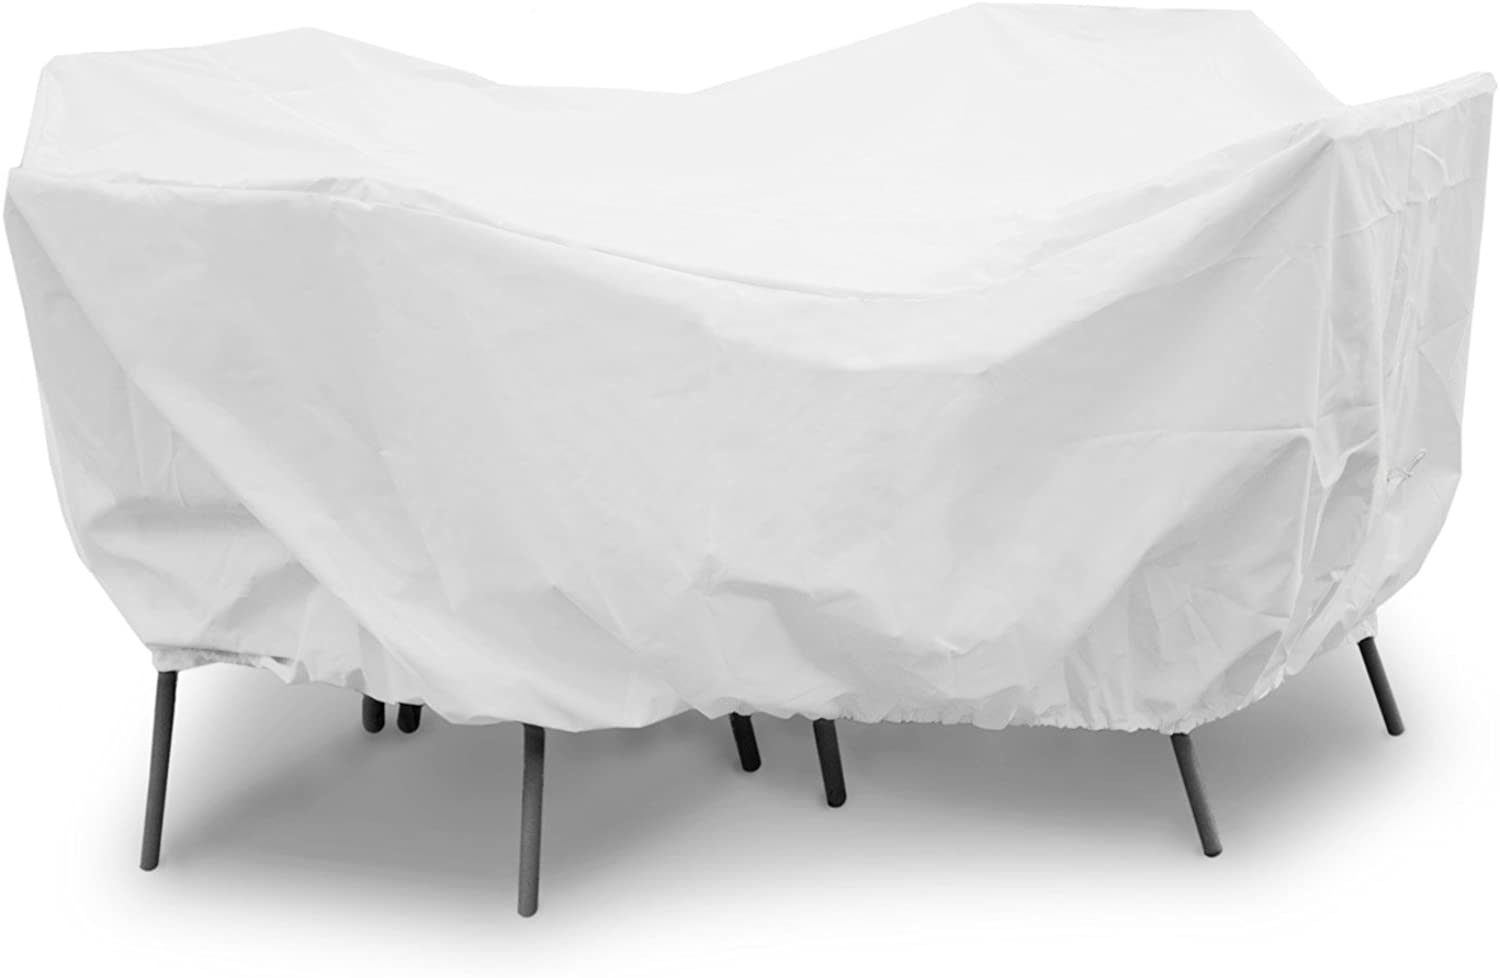 KoverRoos Weathermax 19925 36-Inch Round Table Dining Set Cover, 60-Inch Diameter by 30-Inch Height, White